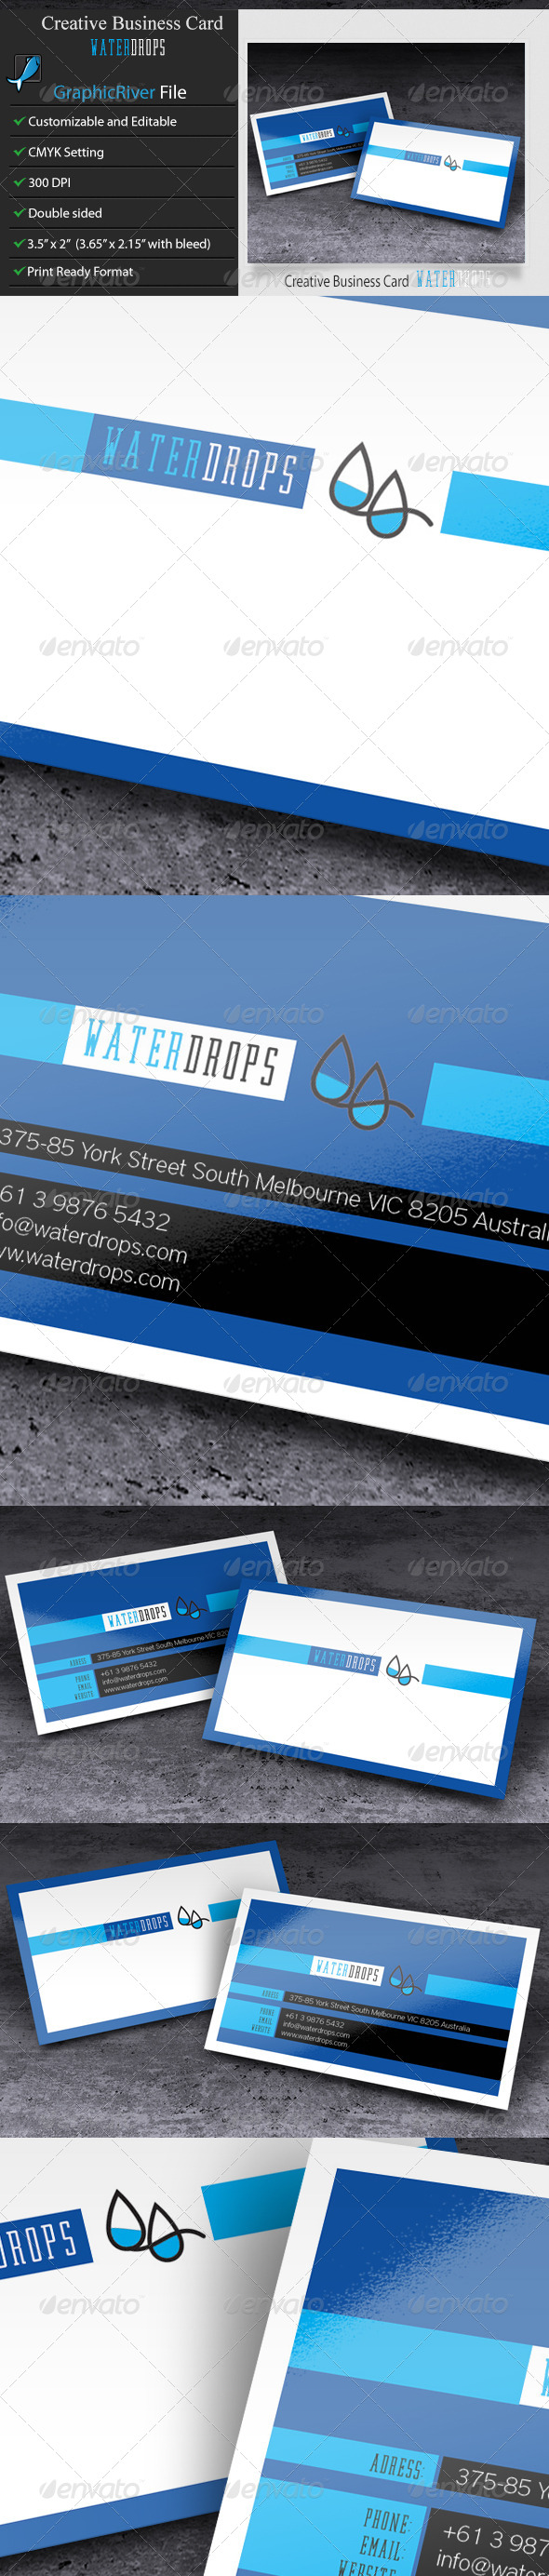 GraphicRiver Creative Business Card WaterDrops 5968897